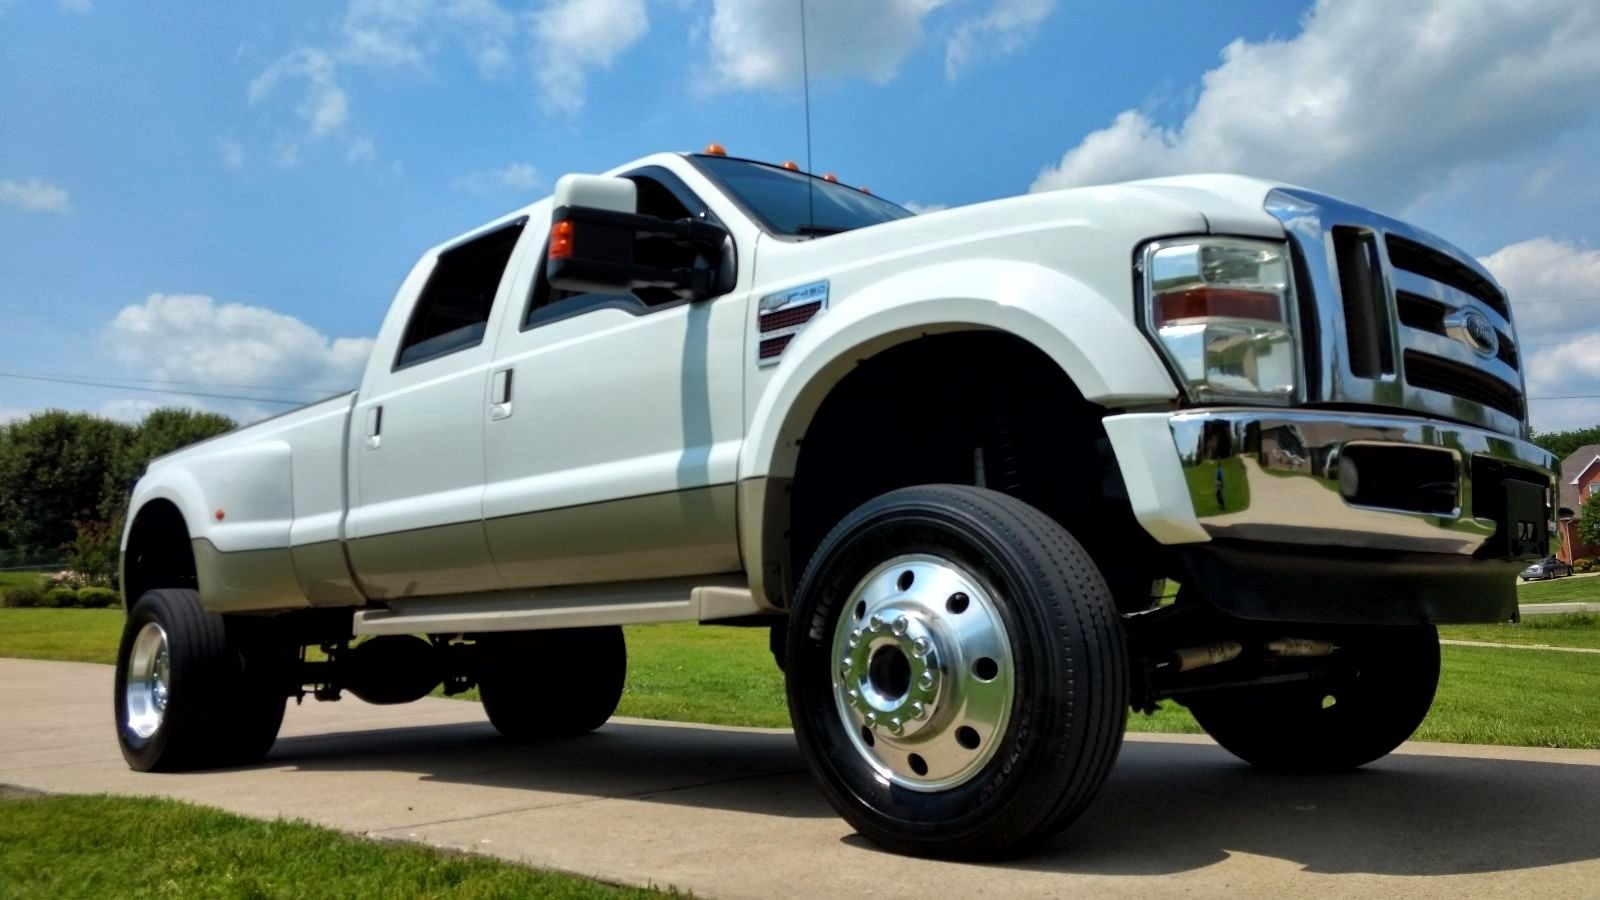 Trucks For Sale: Awesome Looking 2008 Ford F 450 Lariat Lifted Truck For Sale